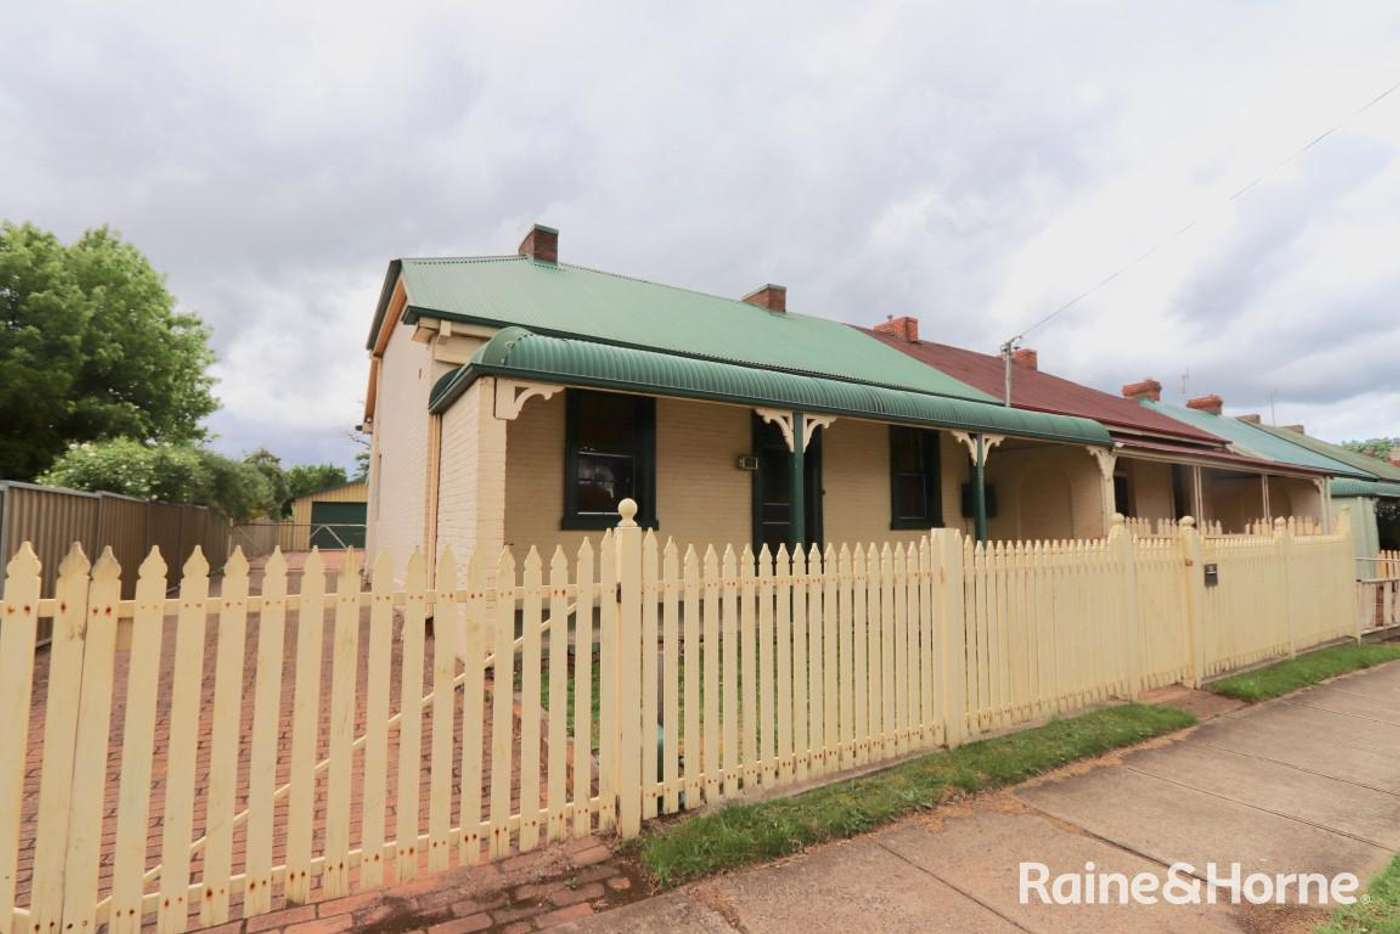 Main view of Homely house listing, 171 Rankin St, Bathurst NSW 2795